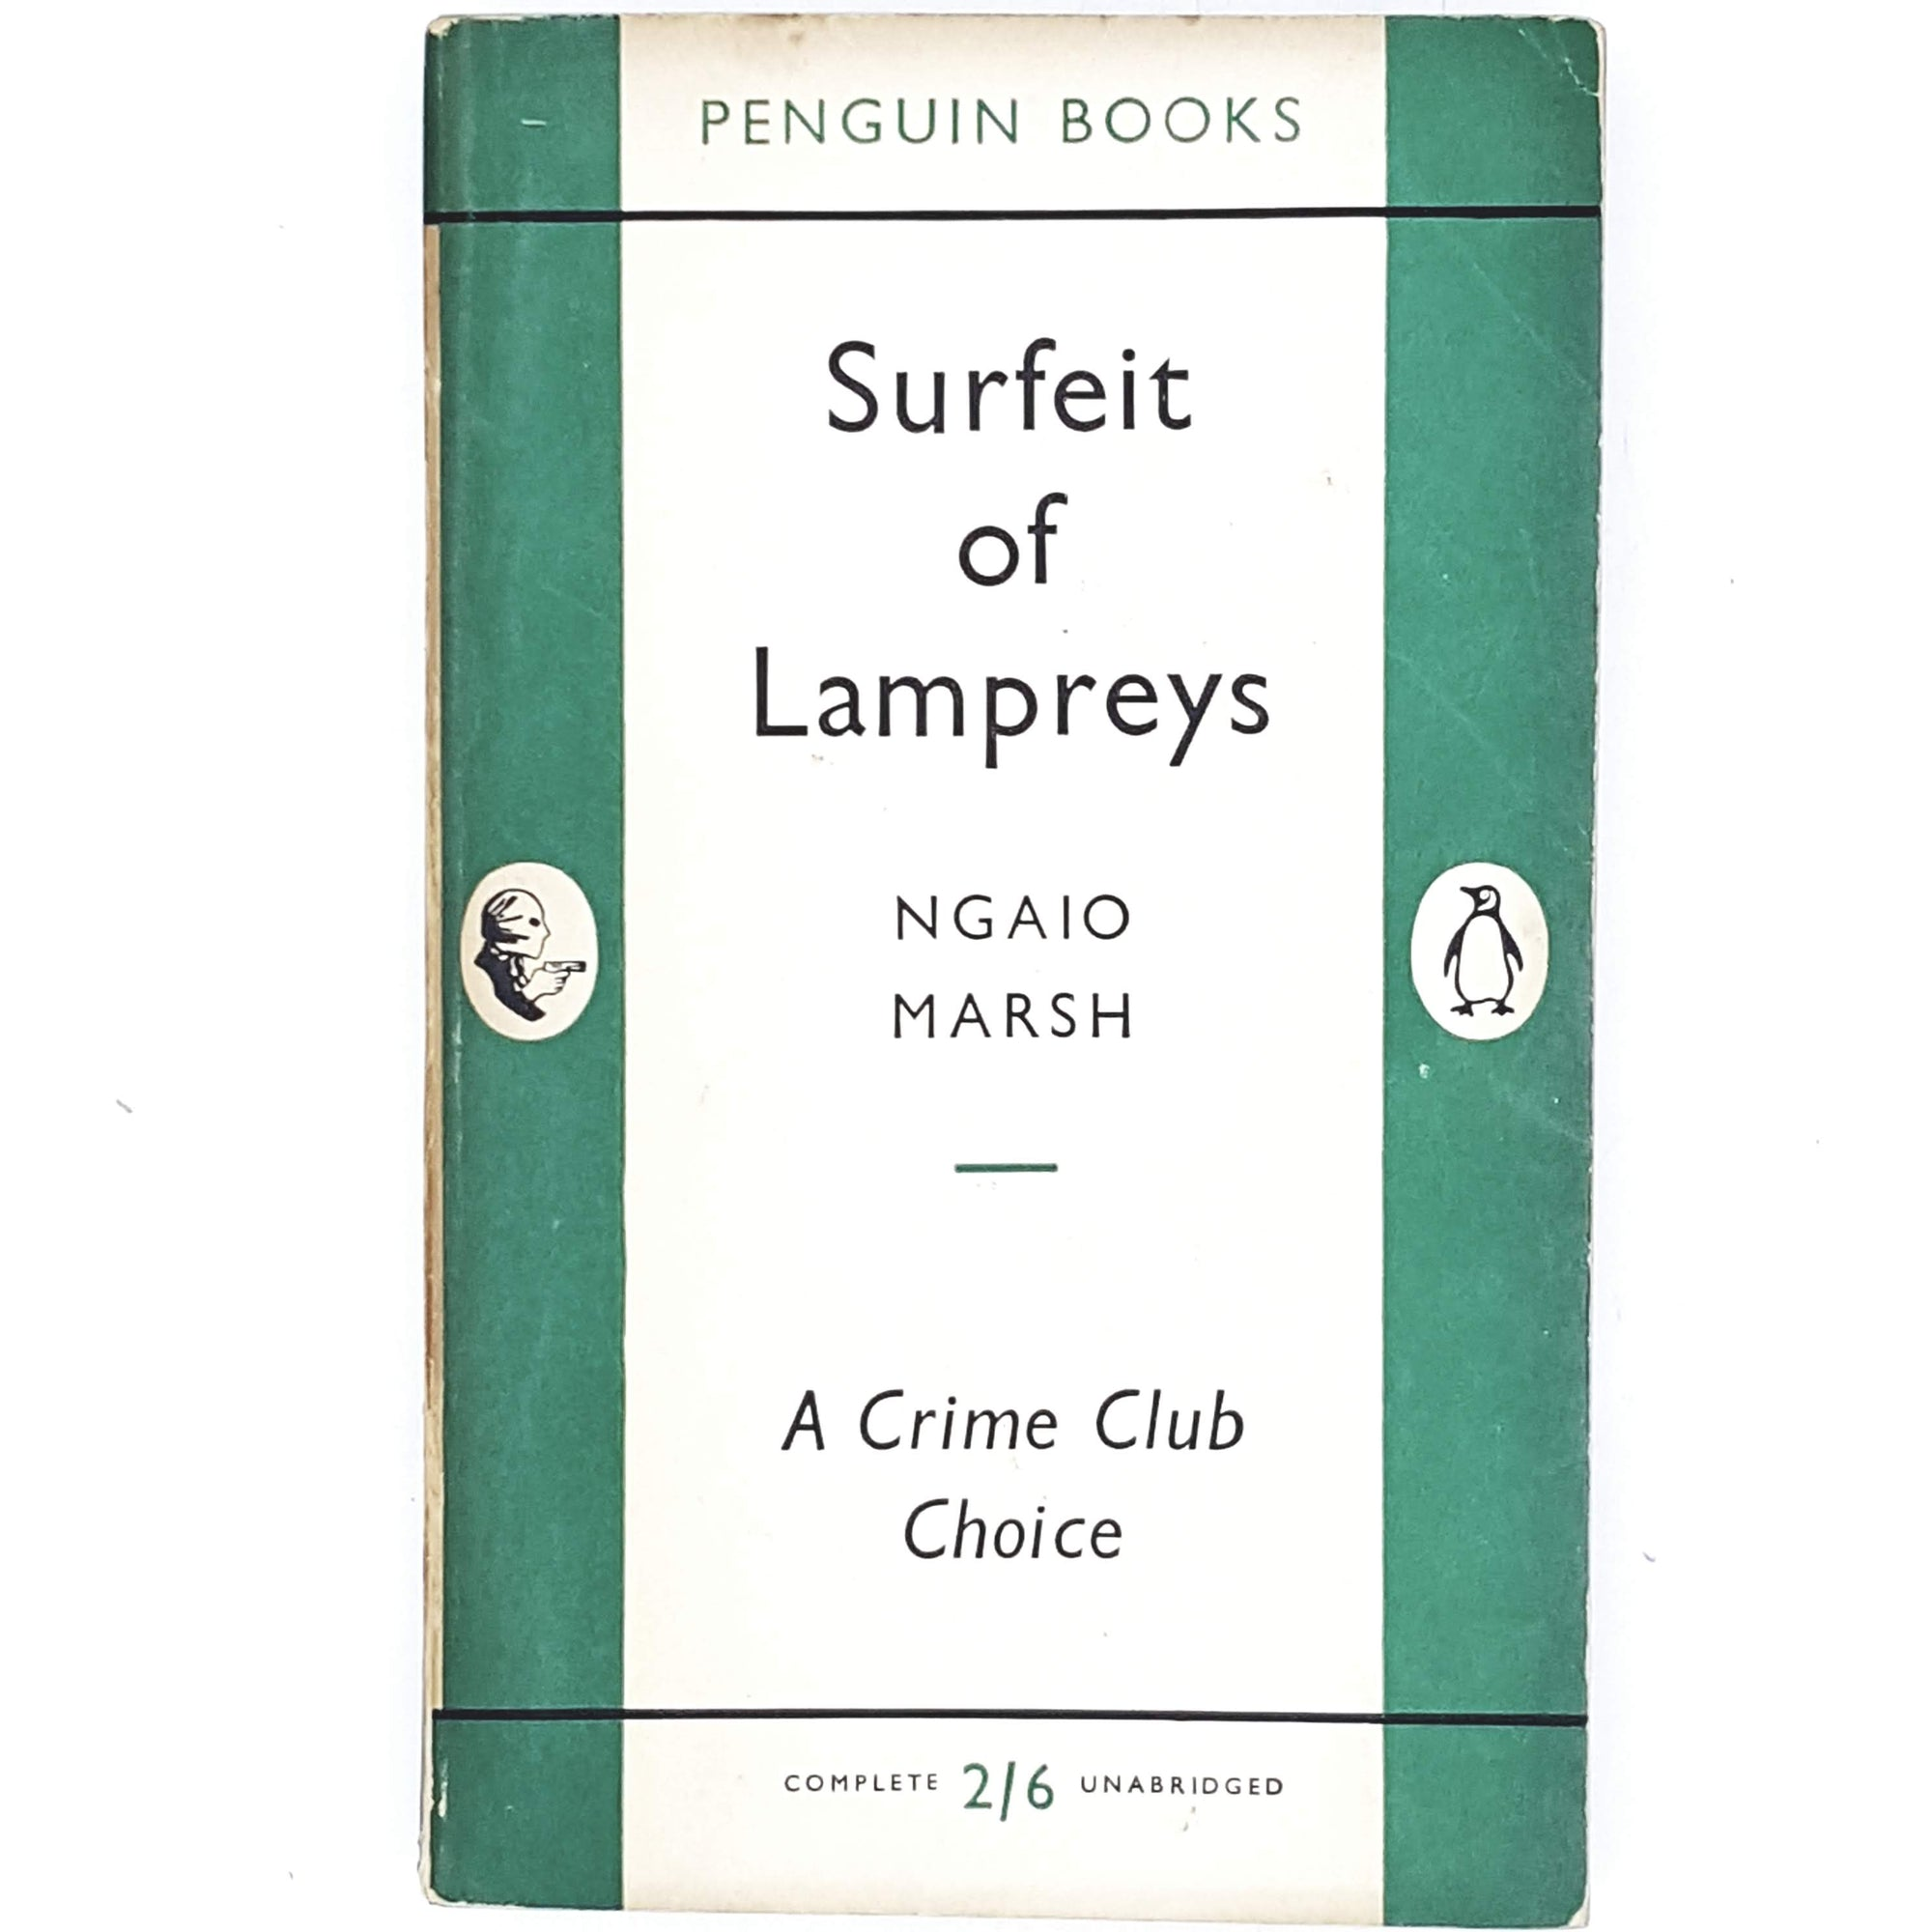 First Edition Ngaio Marsh's Surfeit of Lampreys 1955